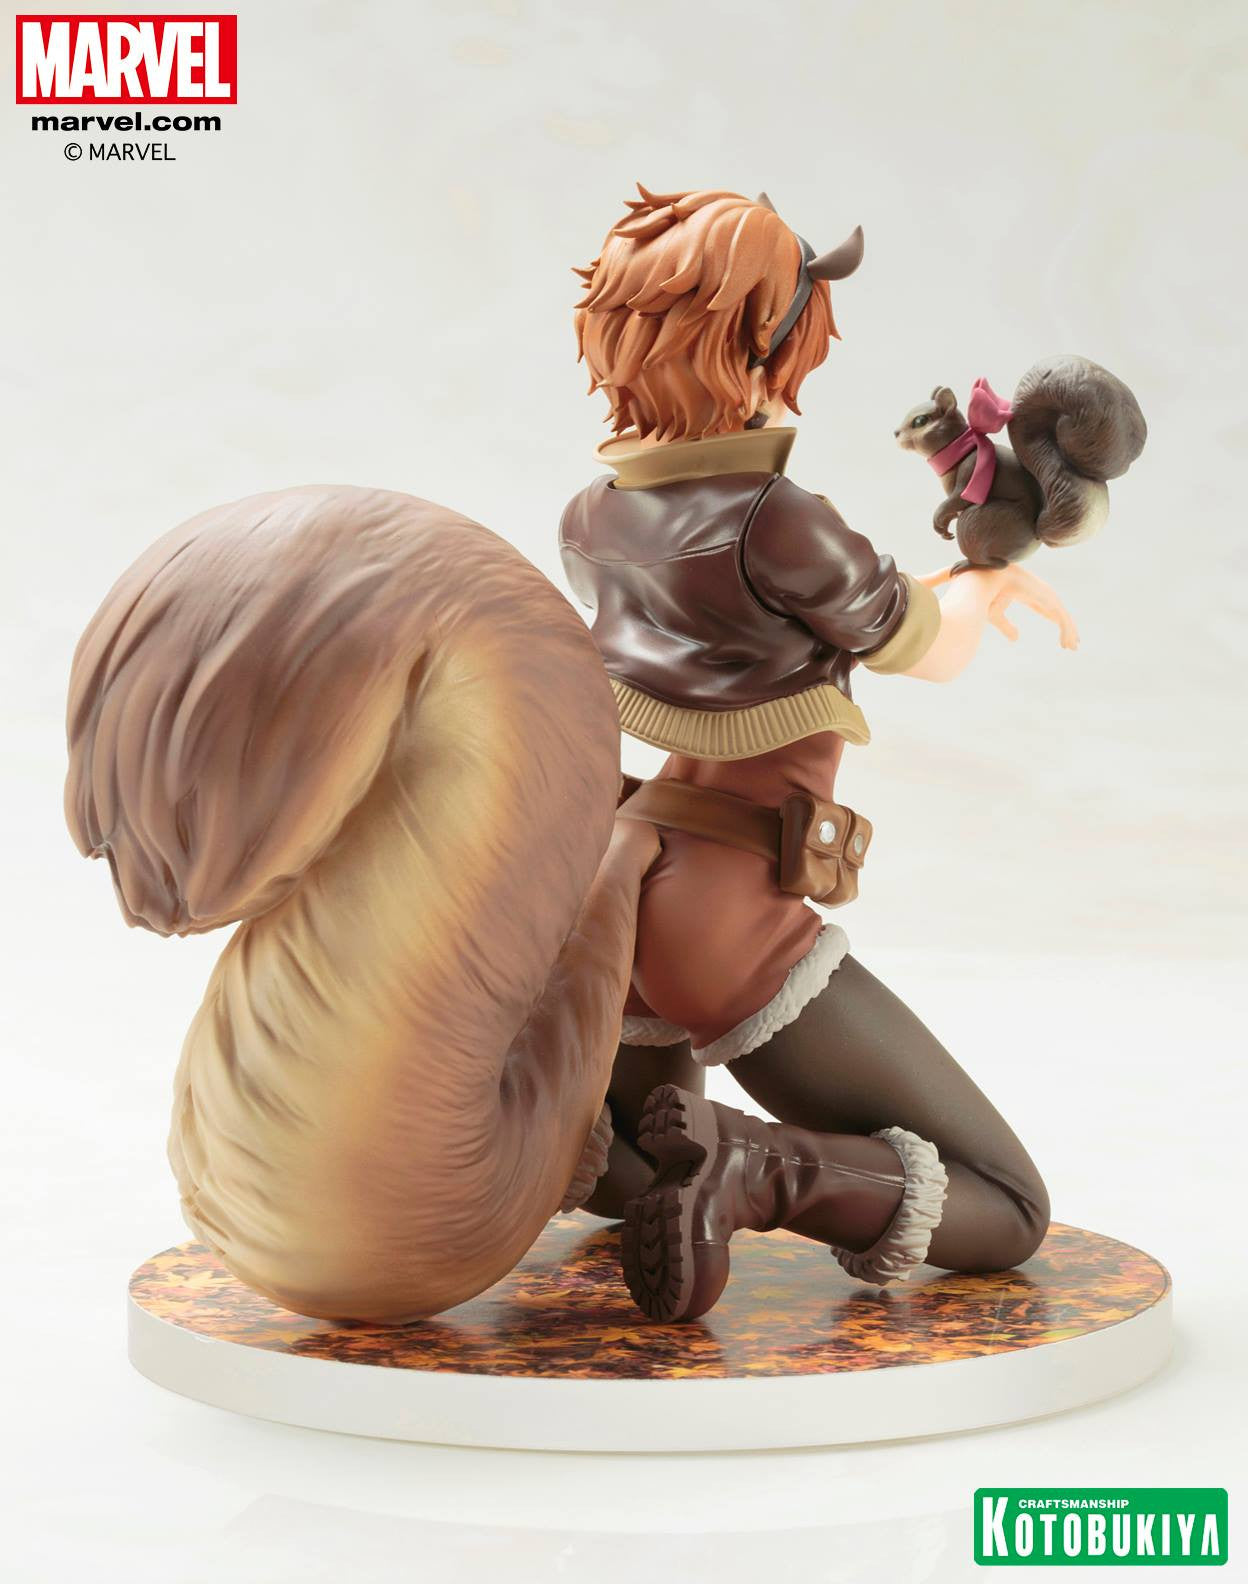 Kotobukiya - Marvel Bishoujo - Squirrel Girl (1/7 Scale) - Marvelous Toys - 4